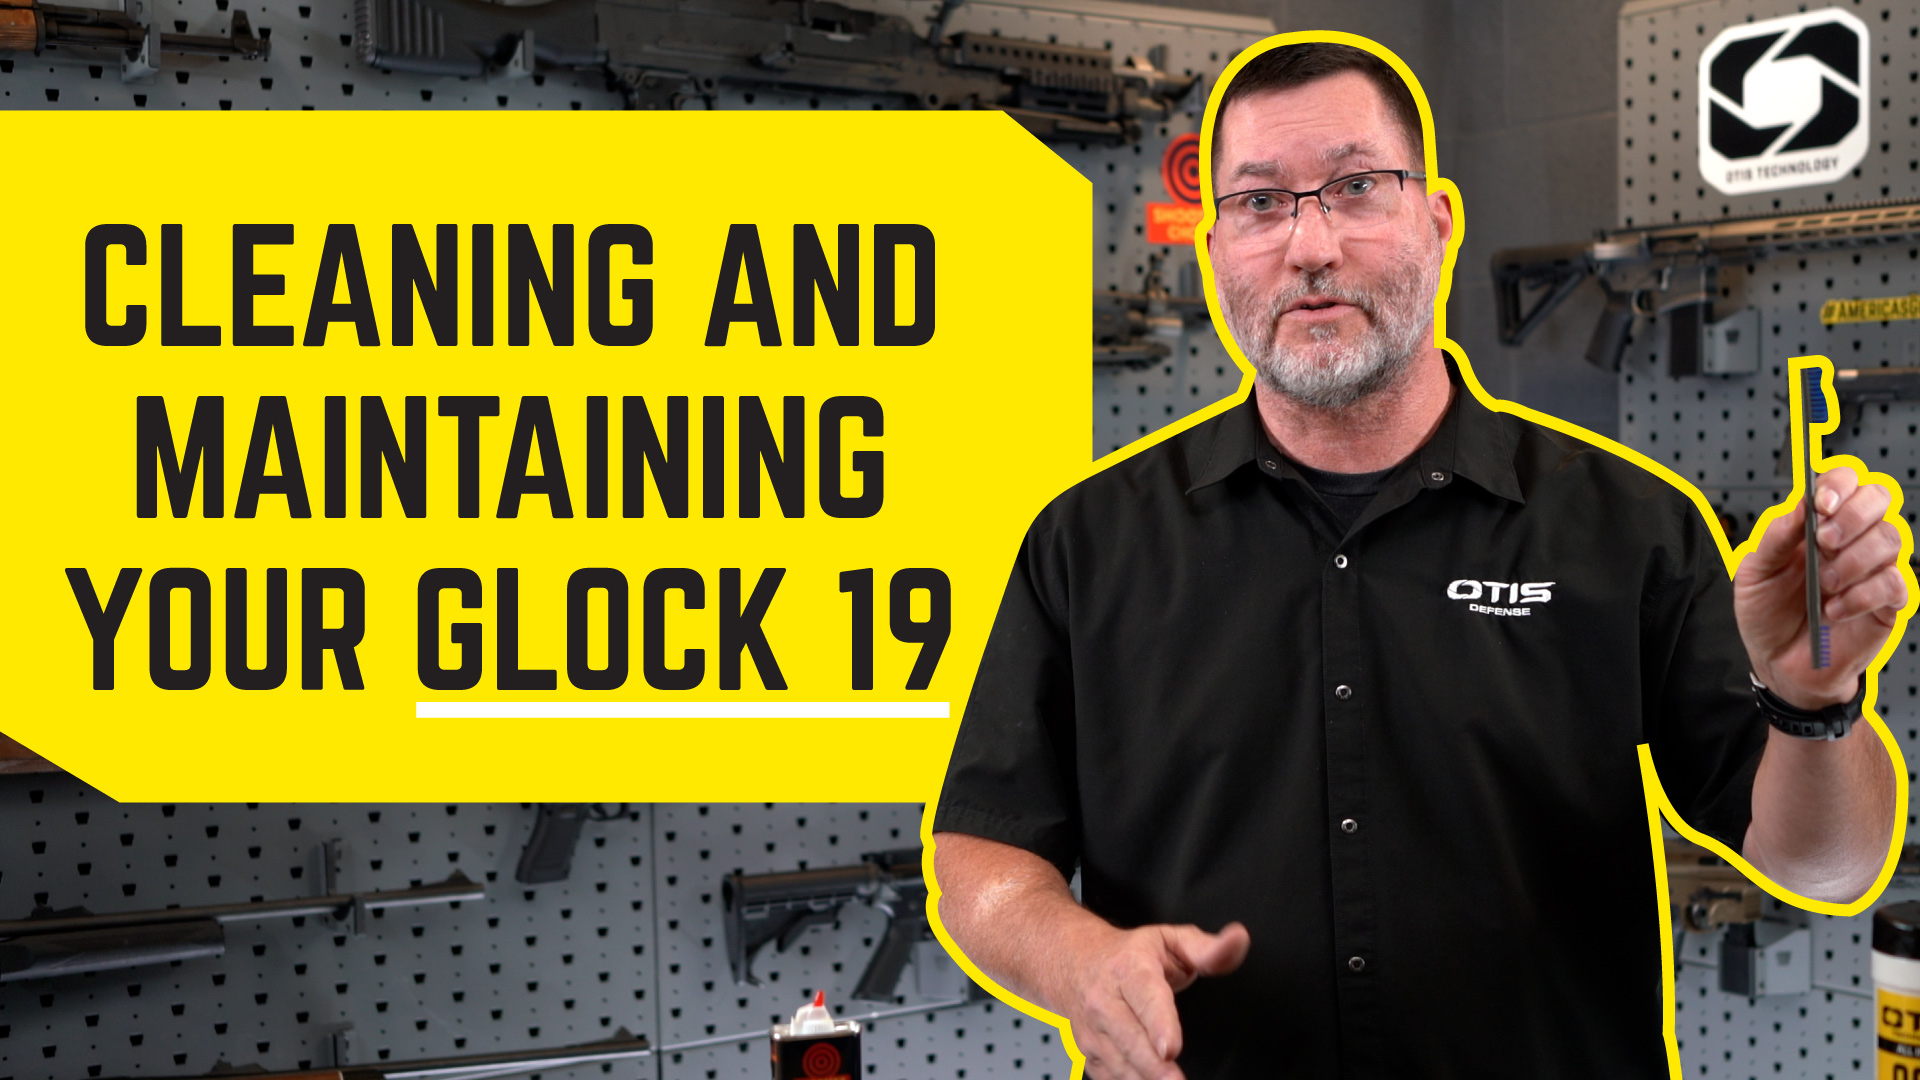 How to Clean and Maintain Your Glock | Glock 19 Cleaning and Maintenance